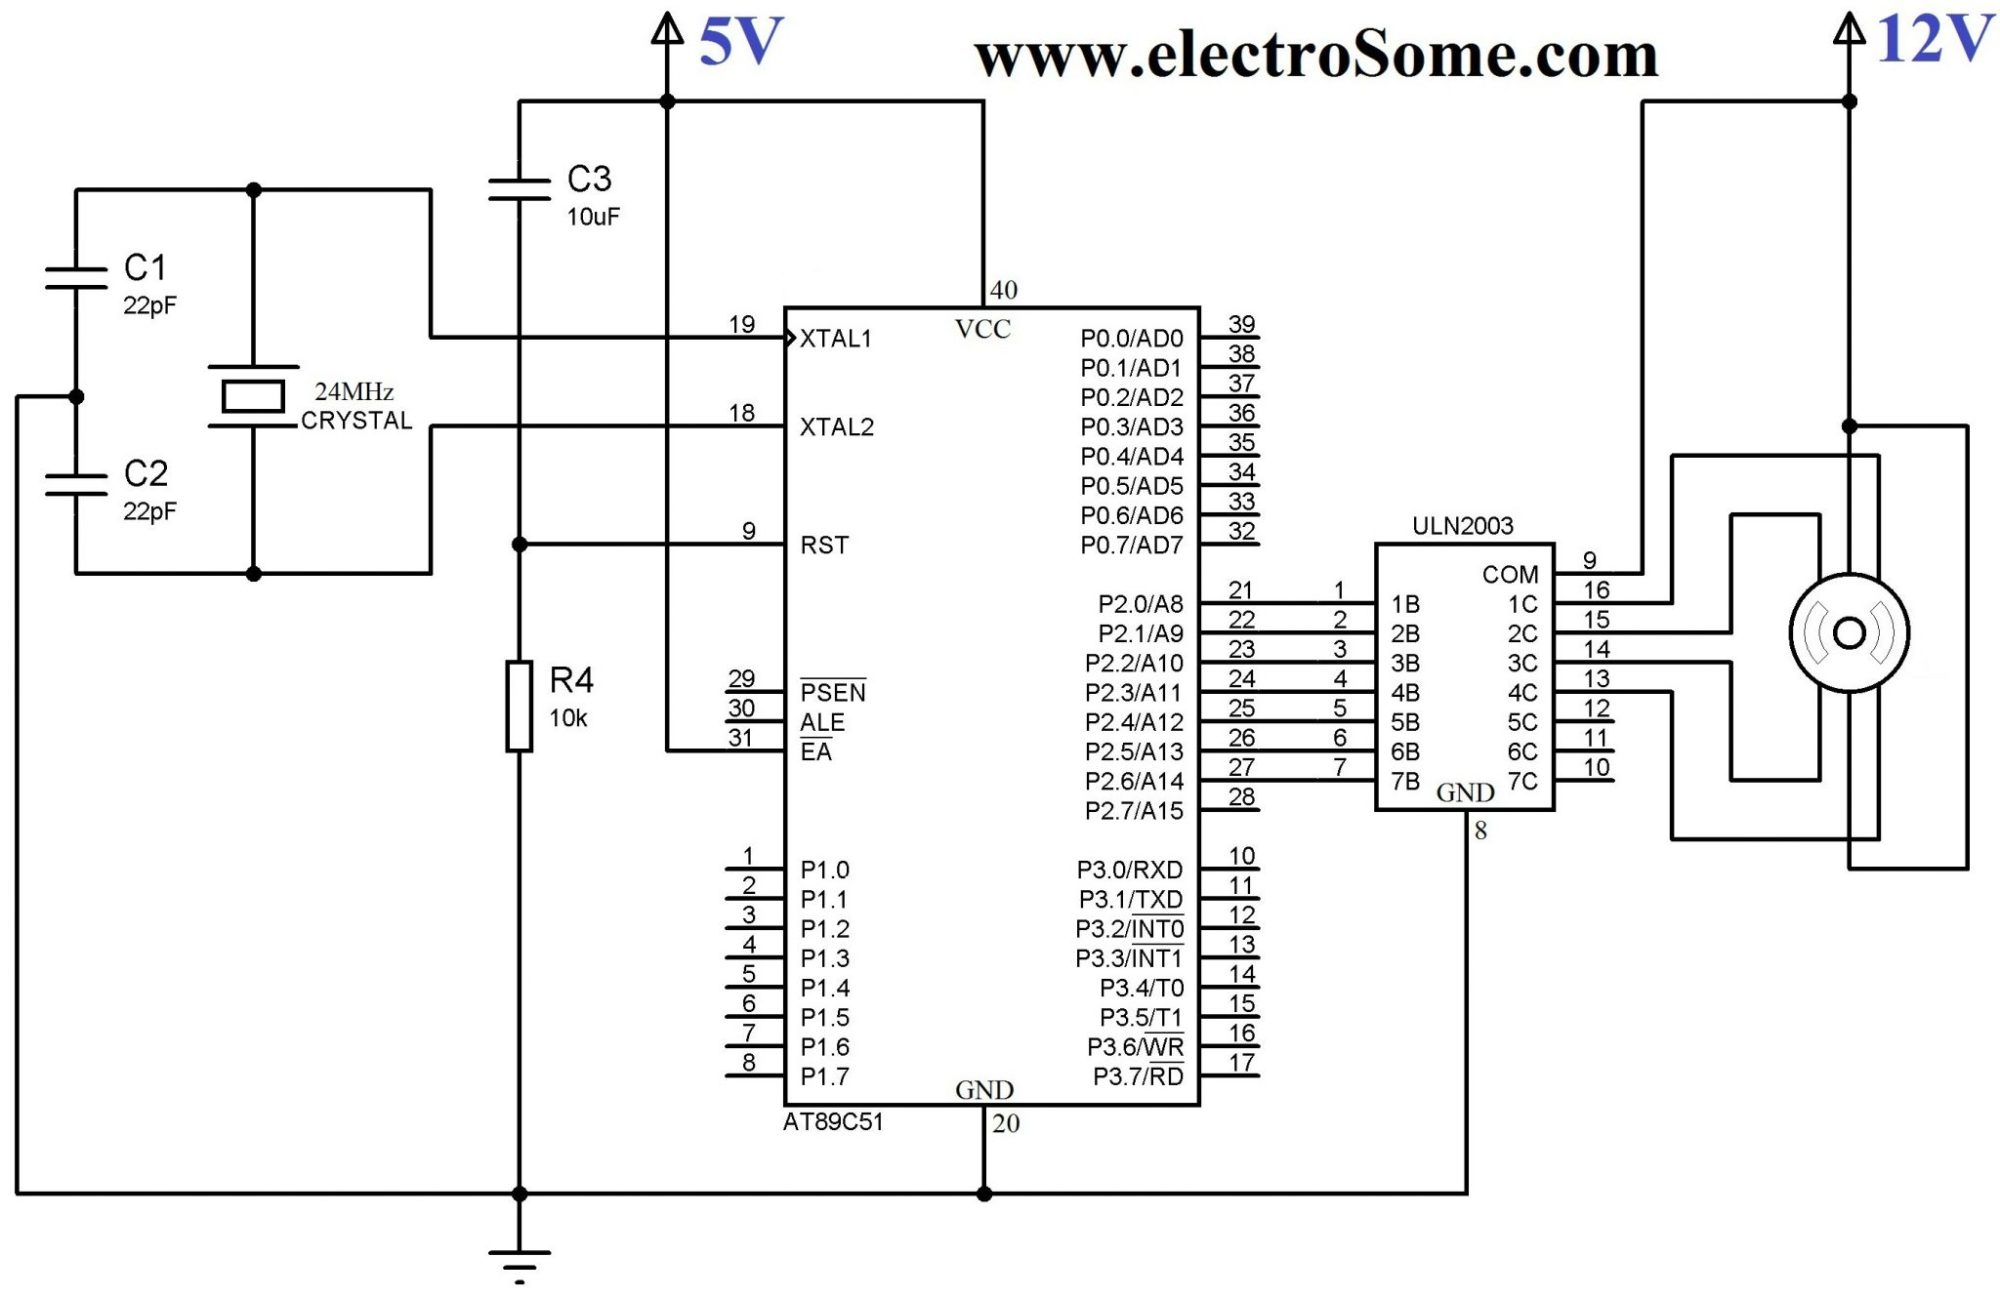 hight resolution of superwinch wiring diagram for atv wiring diagram gpsuperwinch 4200 wiring diagram wiring diagram superwinch atv 1500